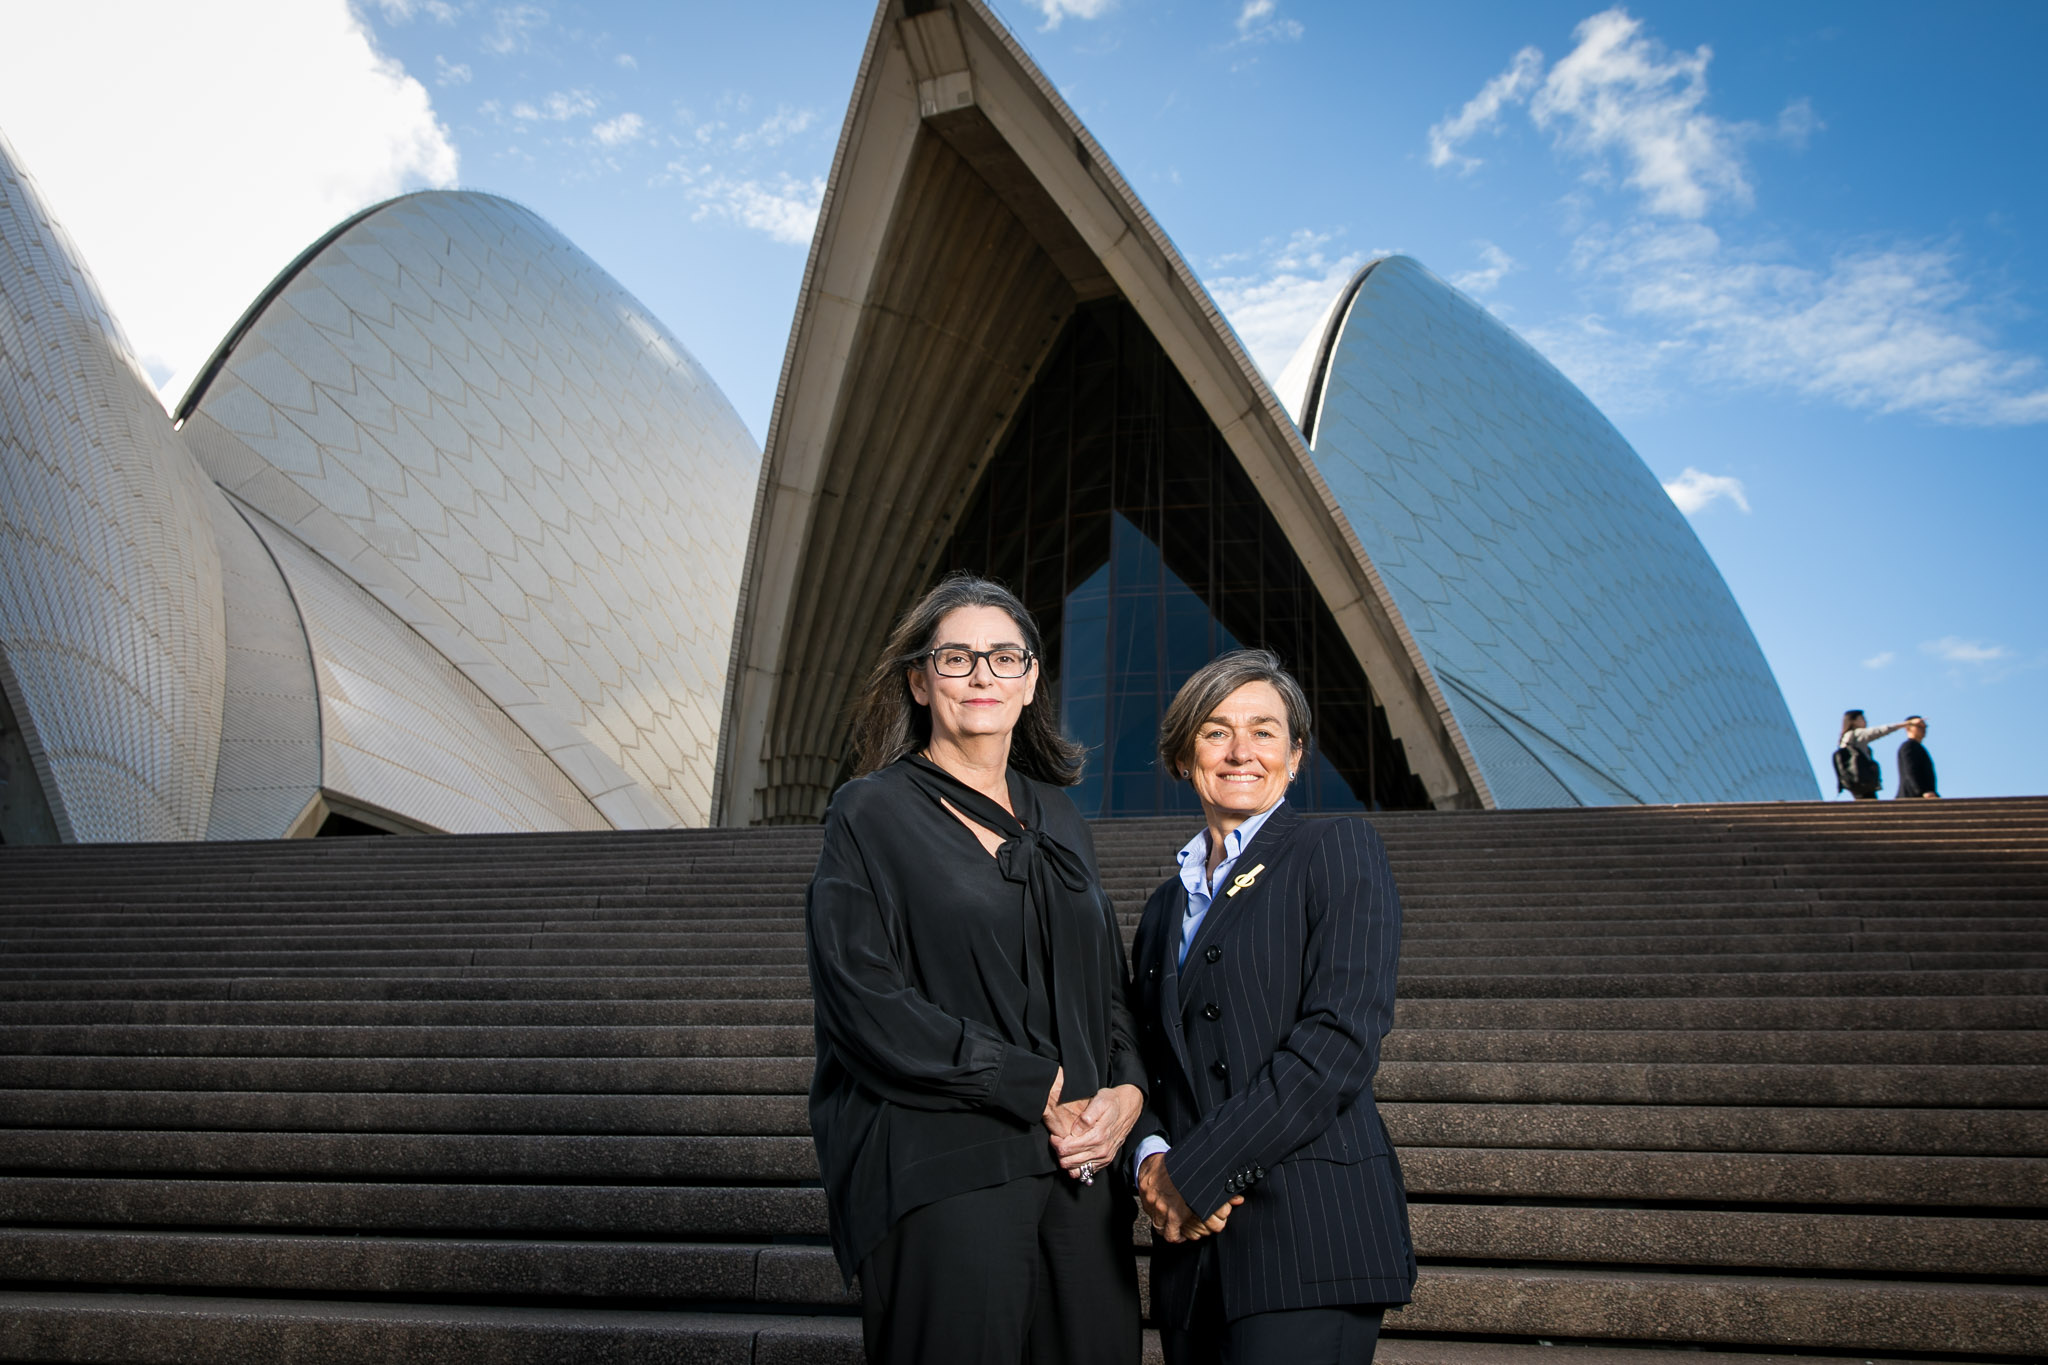 (L-R) Catherine Tanna, Energy Australia MD Louise Herron, Sydney Opera House CEO at the Sydney Opera House on April 5, 2017 in Sydney, Australia.  (Photo by Anna Kucera)